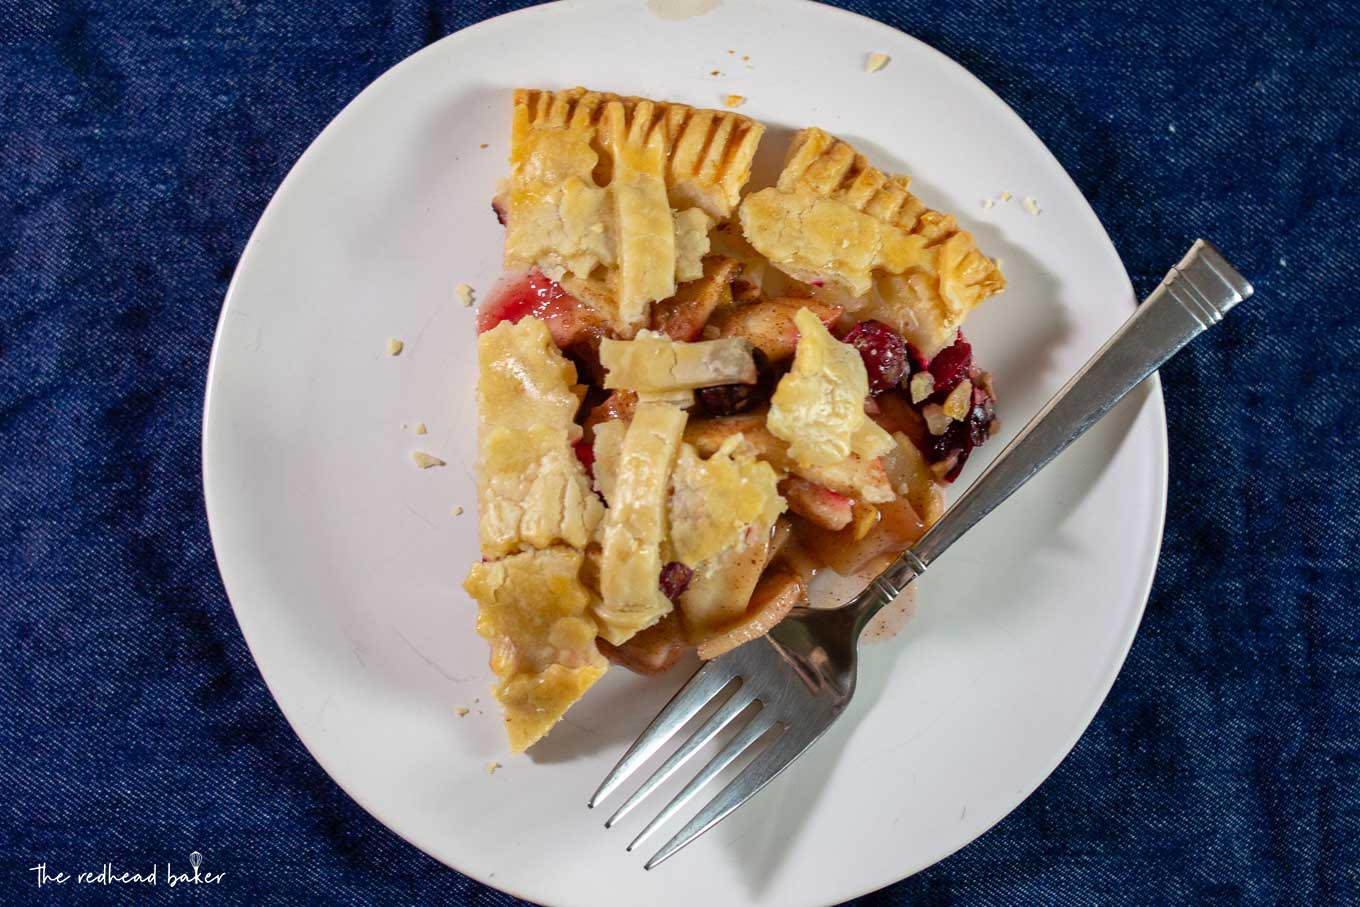 Amazing Cheese A Slice Cranberry Apple Pie Cranberry Apple Pie Redhead Baker Apple Pie Slice Images Apple Pie Slice An Overhead Shot nice food Apple Pie Slice